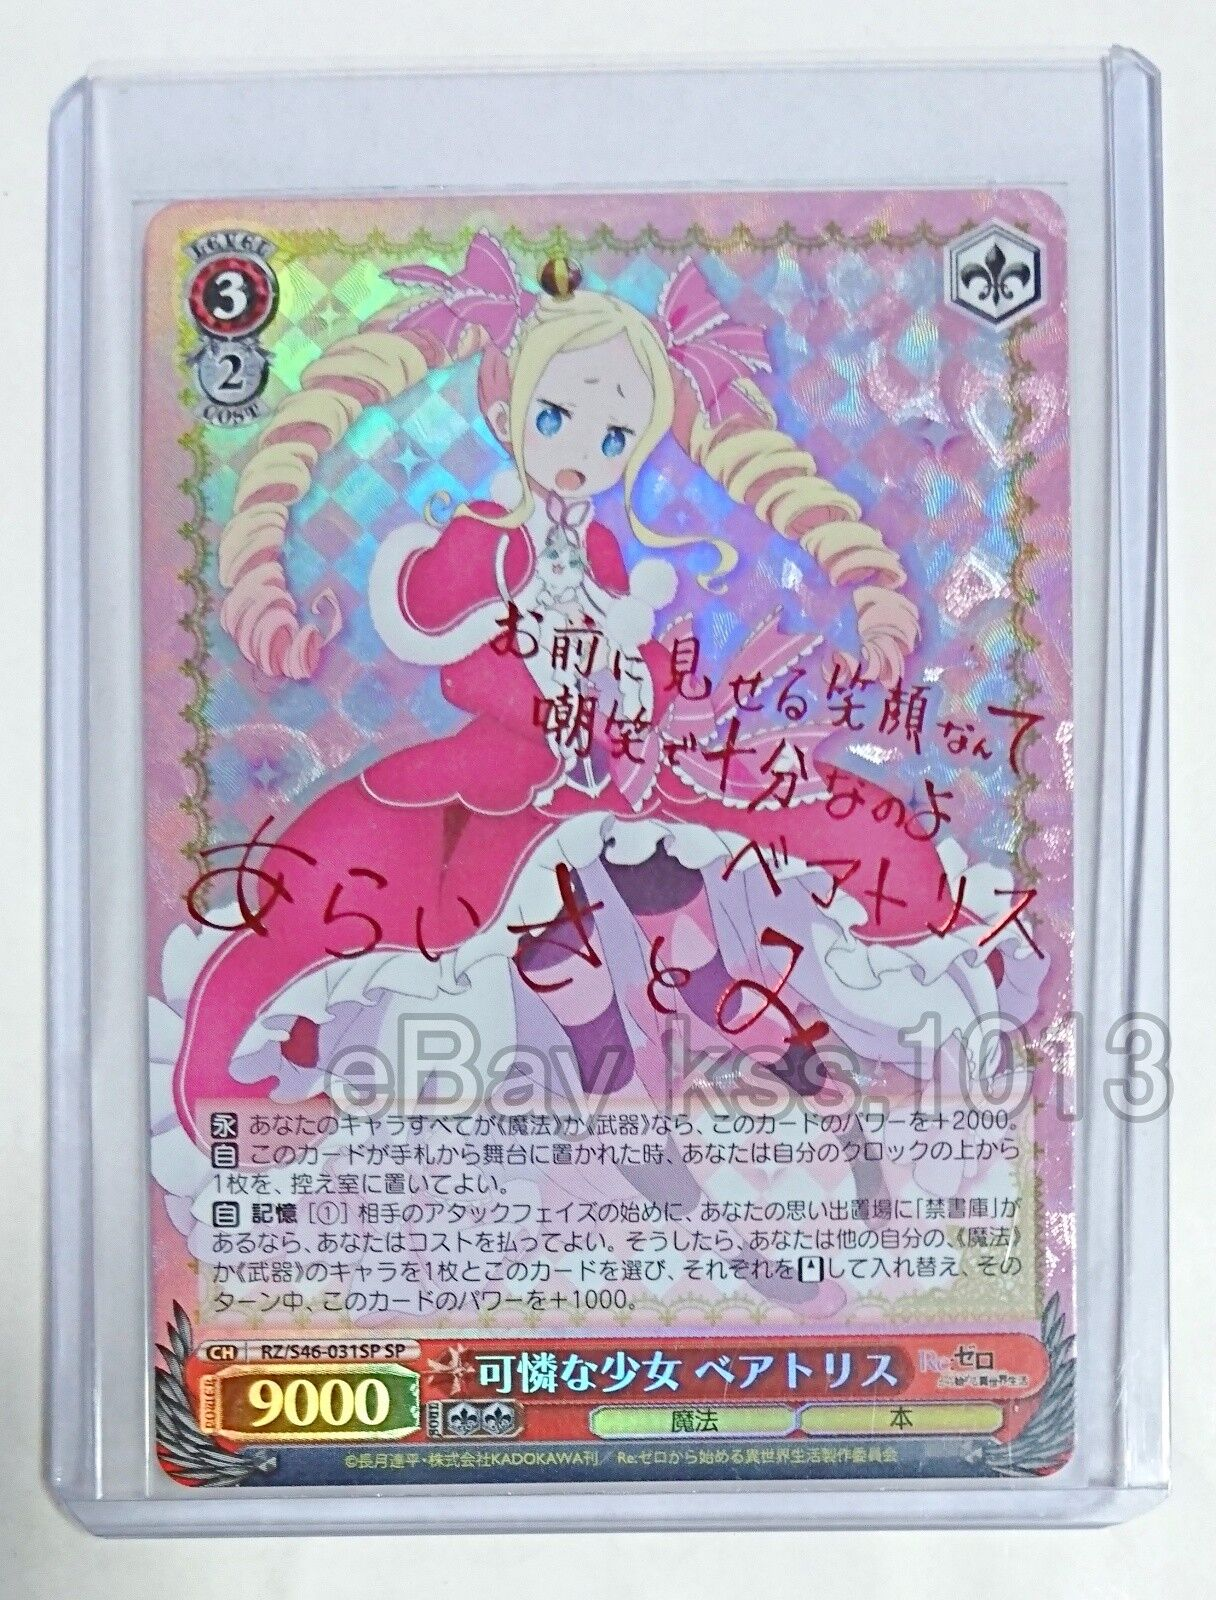 Signed Weiss black Re Zero RZ S46-031SP SP Cute Girl, Beatrice